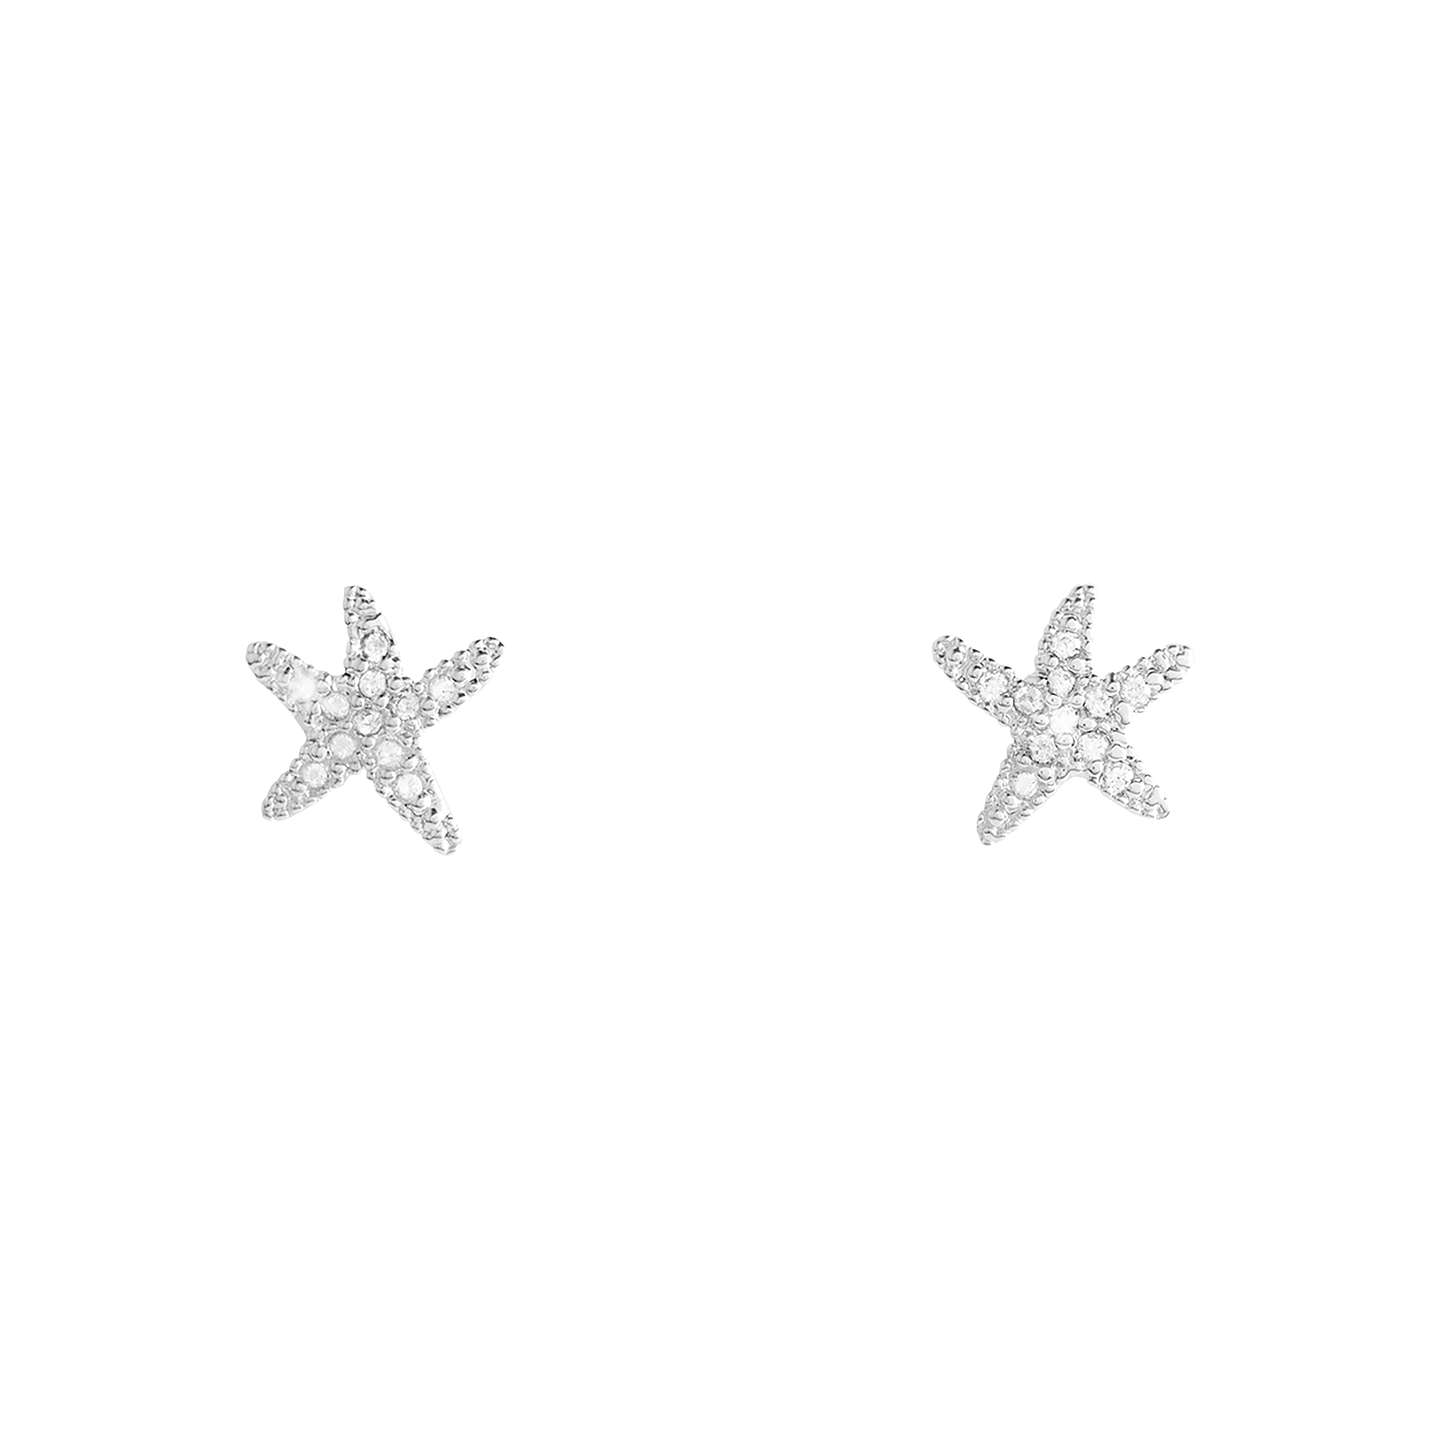 products piercing body earring aqua jewelry turquoise starfish stud helix tragus cartilage